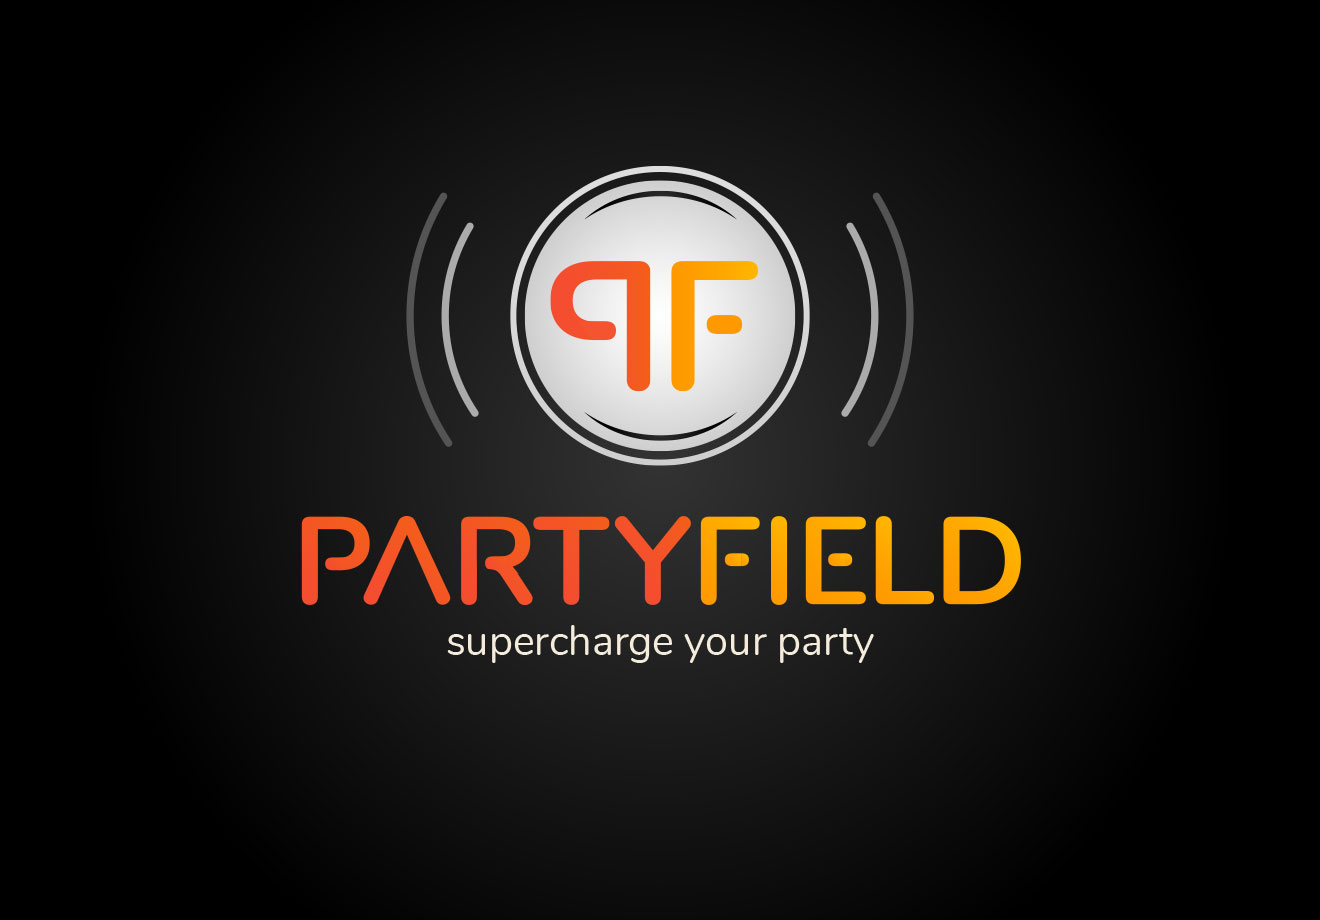 project-partyfield-image_1